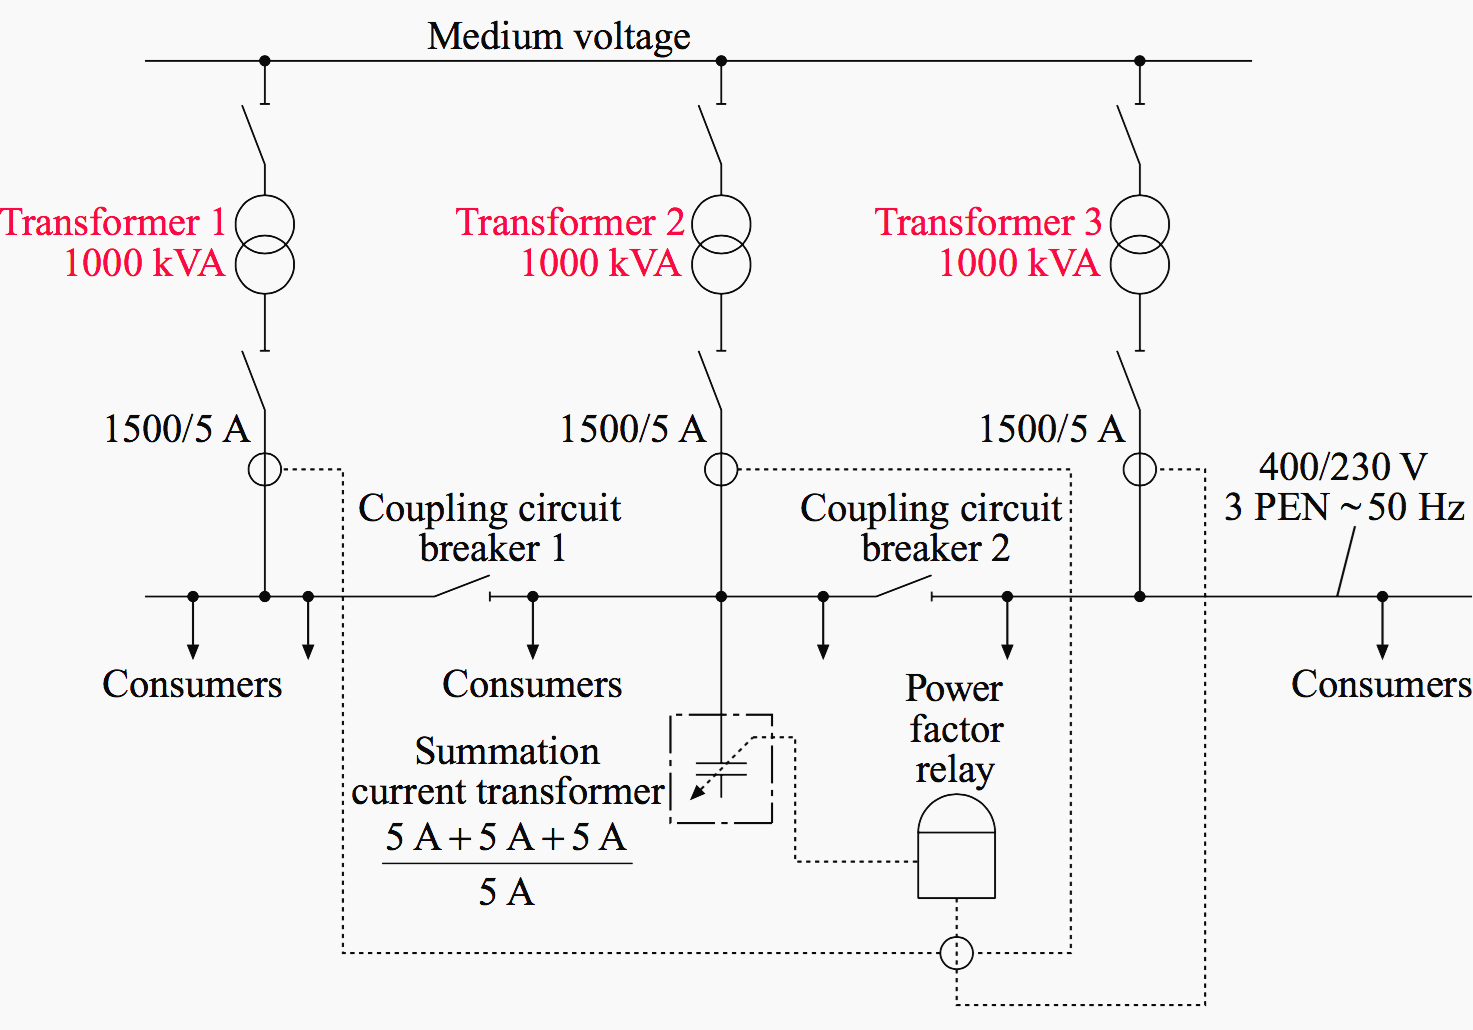 Central-type compensation by means of summation current transformer